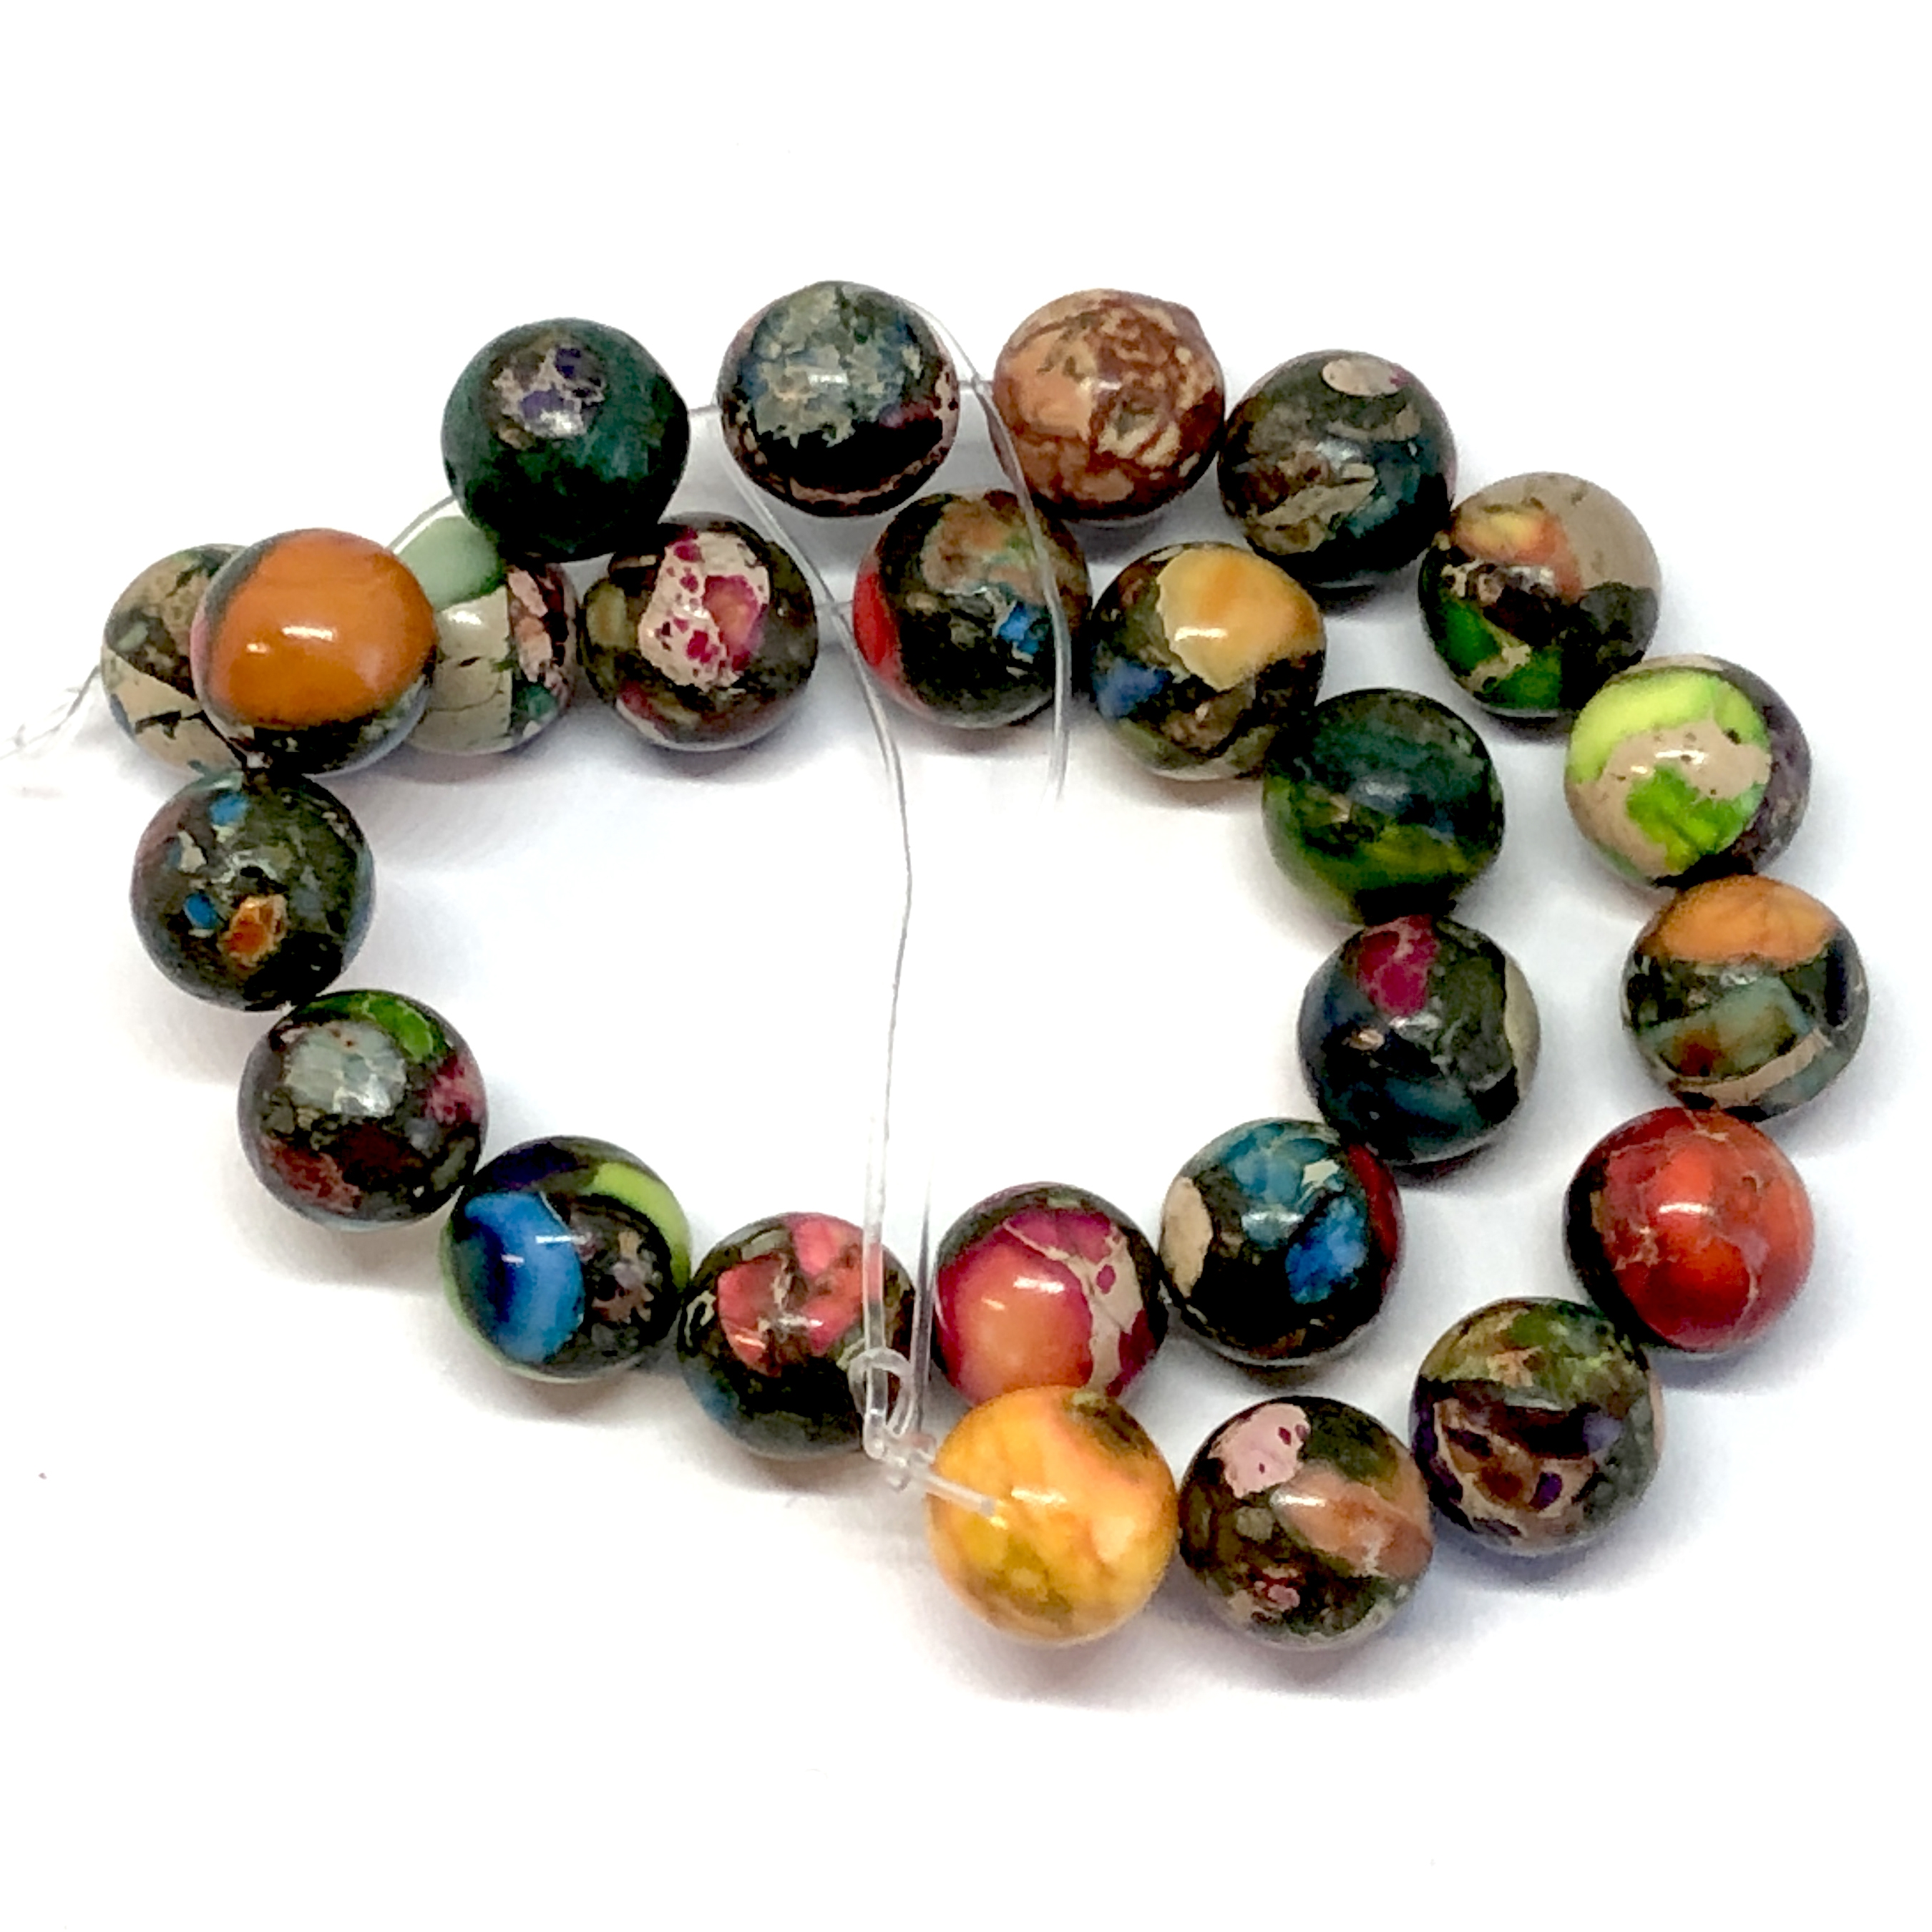 semi precious stones, semi precious beads,  jasper, impression jasper, earth tones, natural stones, semi precious jasper beads, 8mm, jasper beads, sea sediment jasper, mixed color semi precious beads, stone beads, mixed impression jasper, 08800